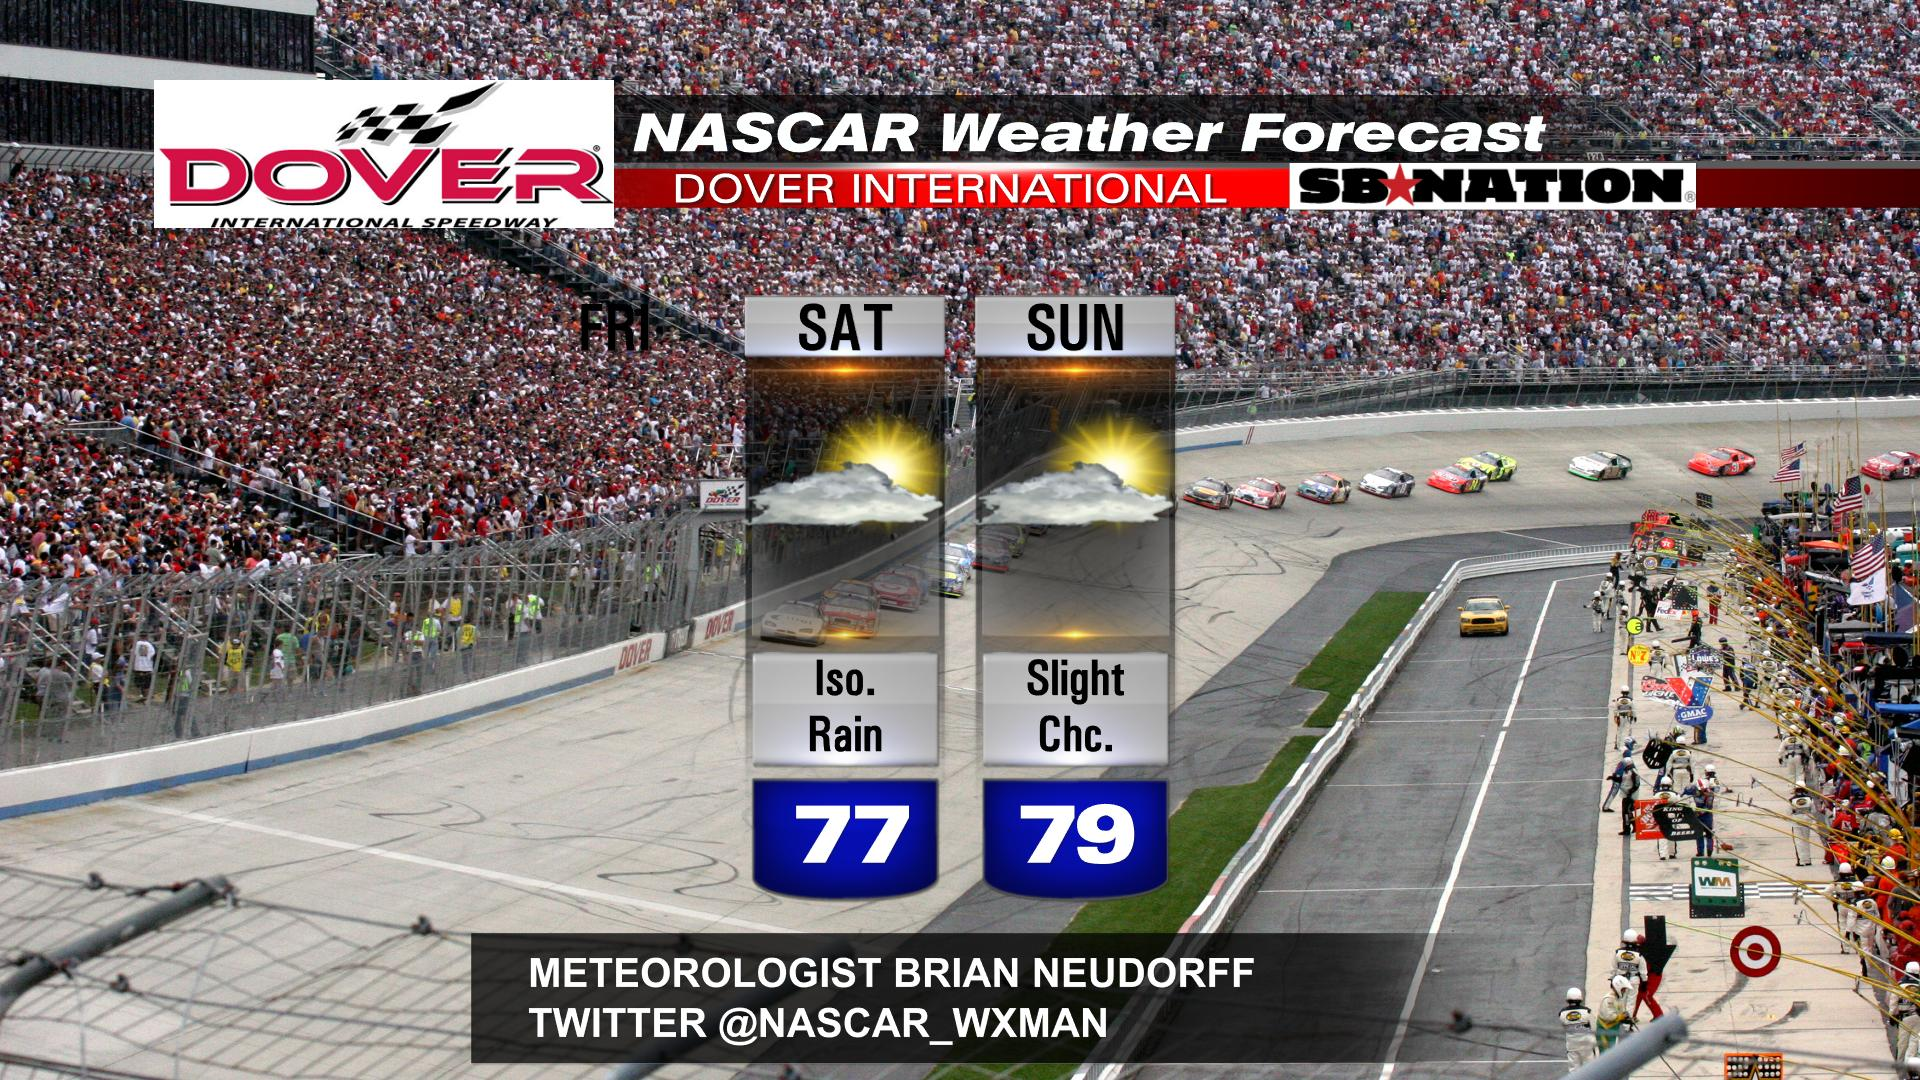 Dover NASCAR weather forecast: Looking a little drier